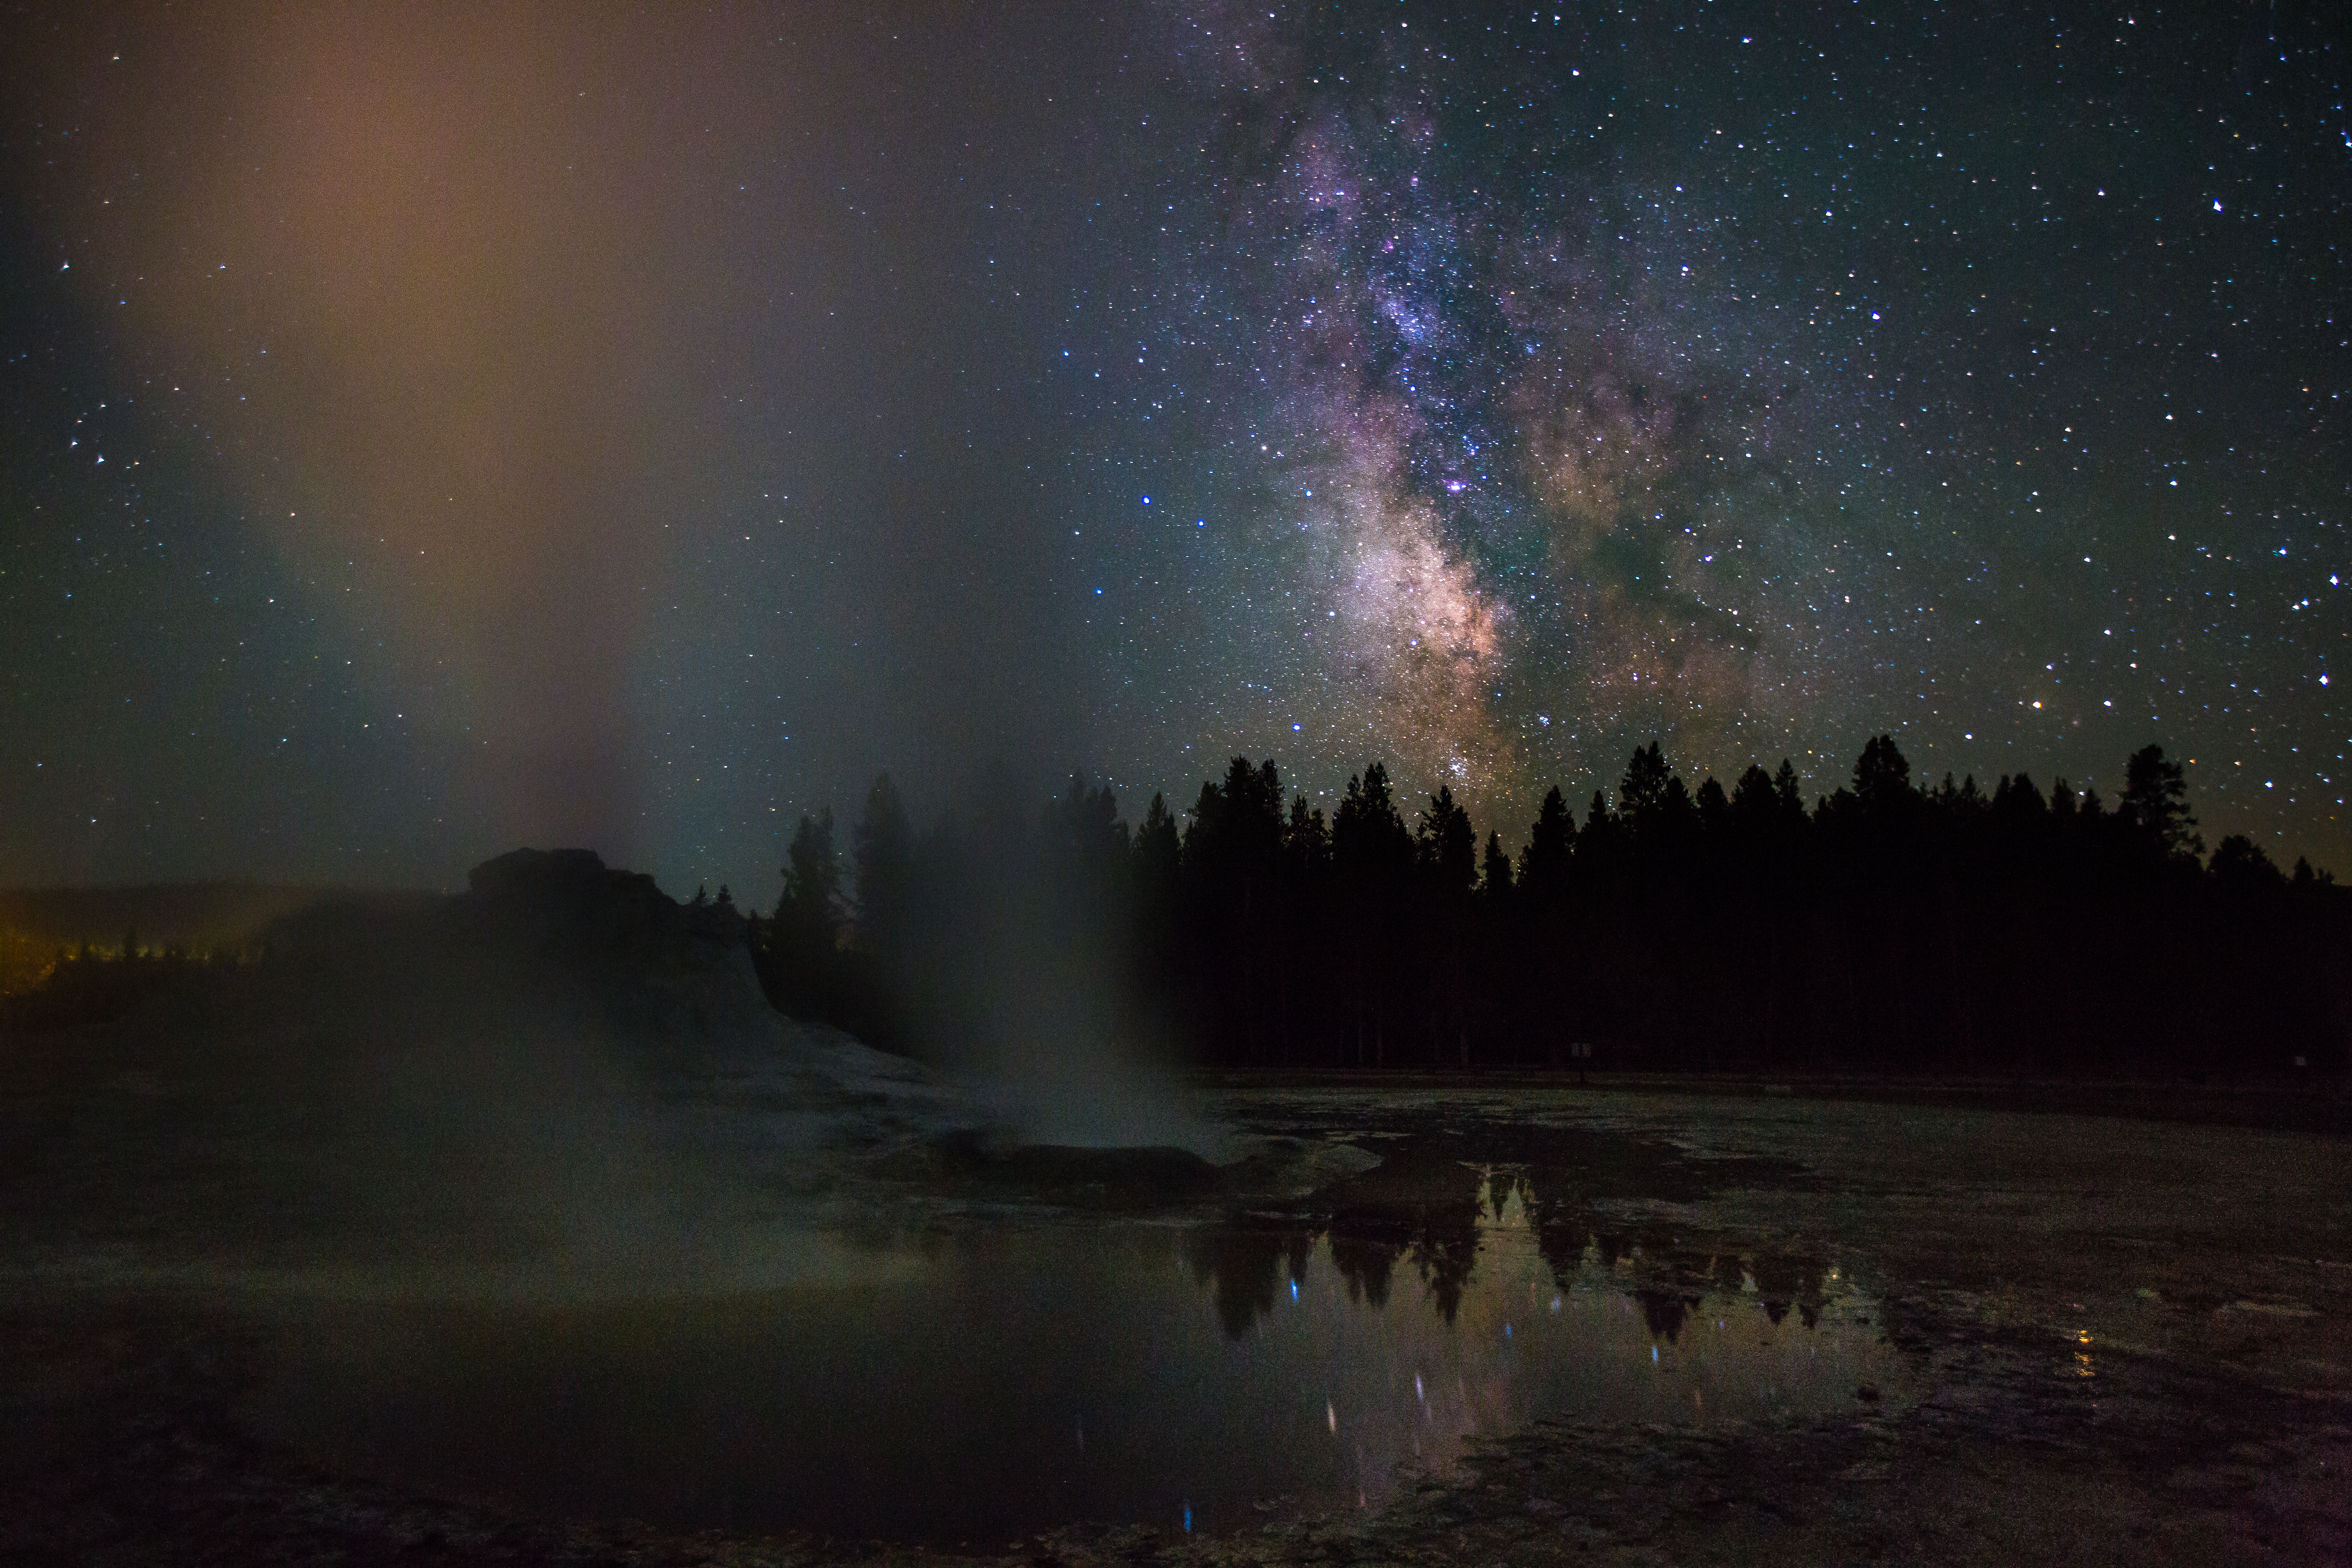 The Milky Way as seen from Yellowstone National Park.